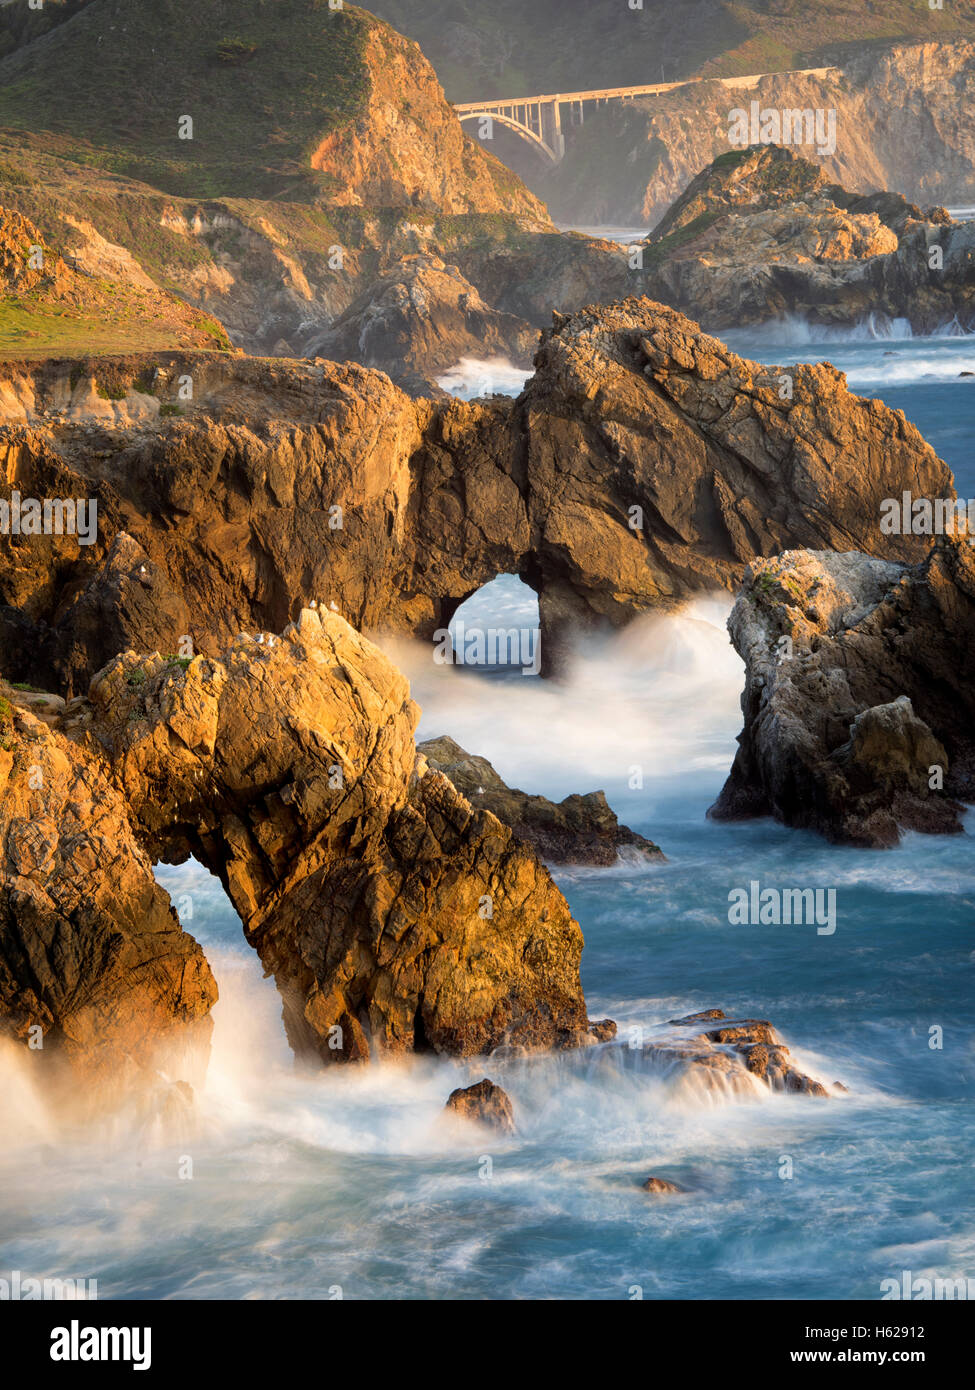 Arches and waves on Big Sur coast, California - Stock Image